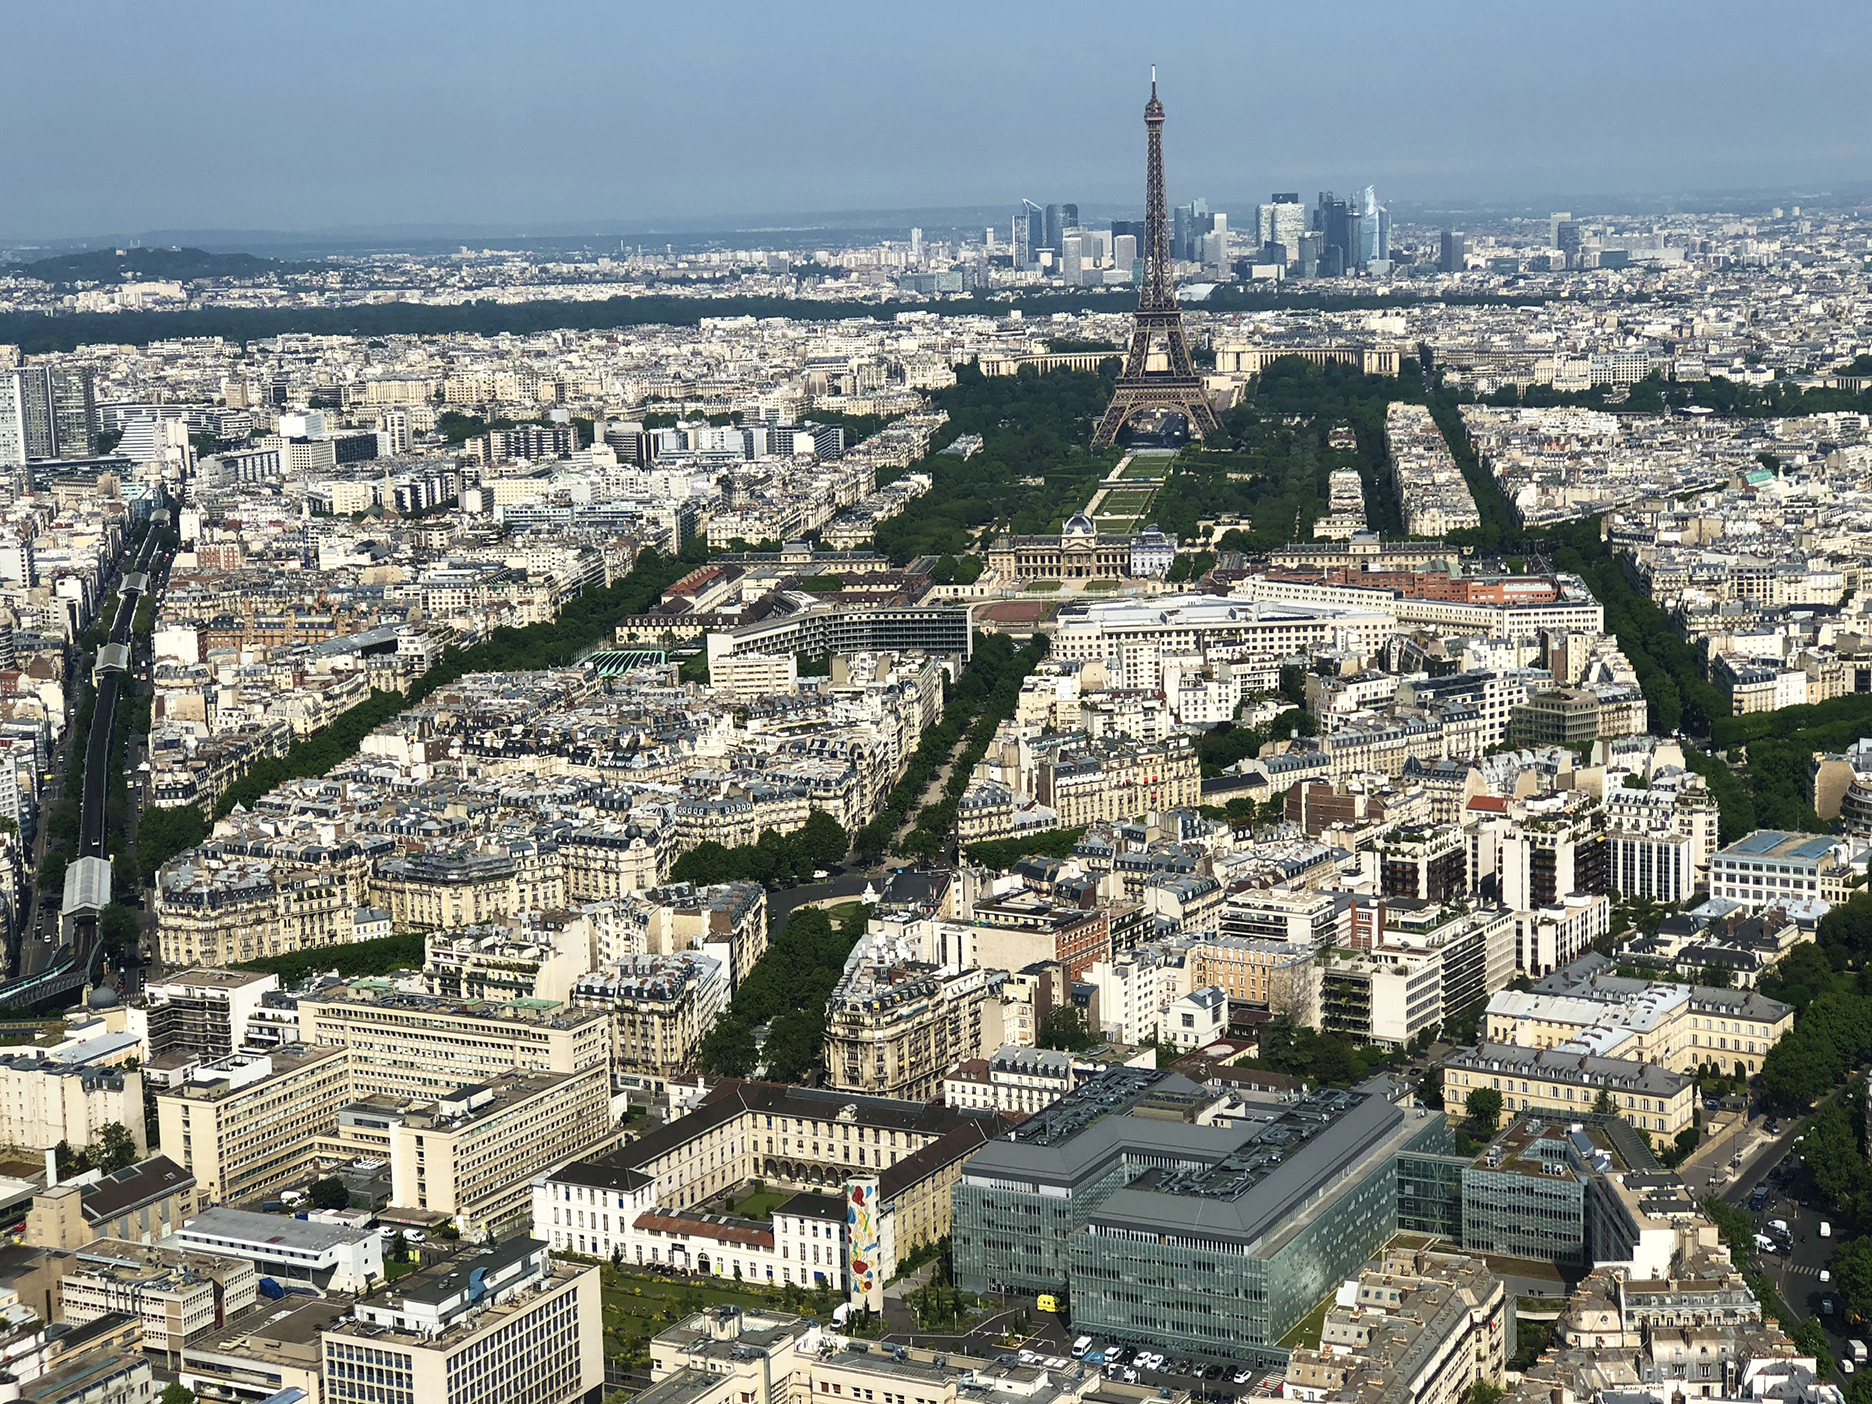 What a view! From left to right: métro aérien, bois de Boulogne, Ecole Militaire, Champs de Mars, Eiffel Tower, Palais de Chaillot, La Defense.